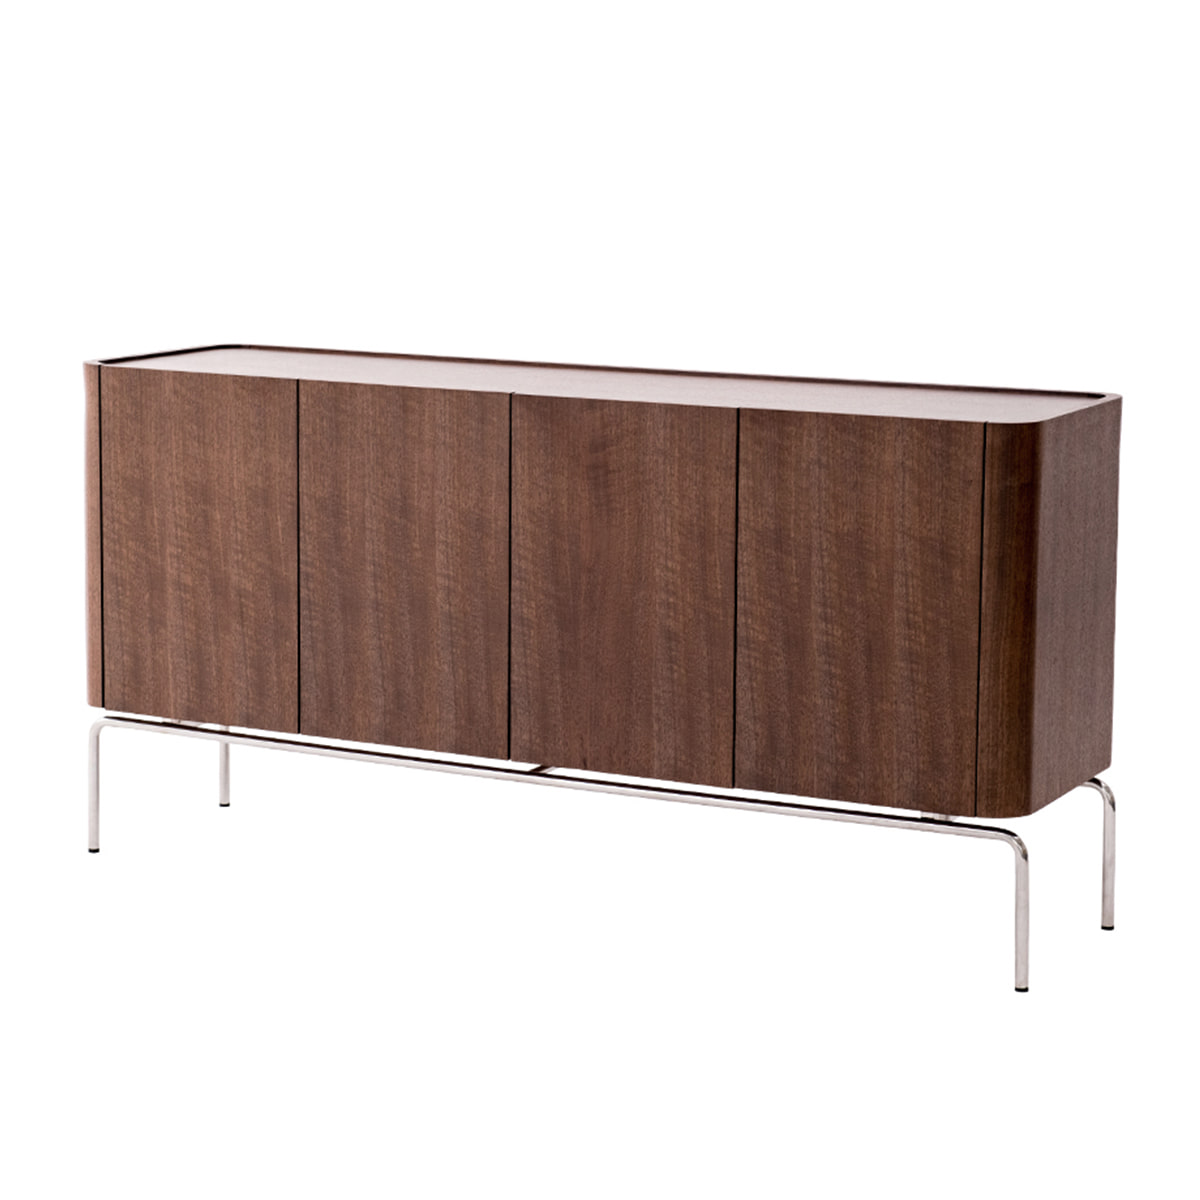 LINEA SIDE BOARD WALNUT